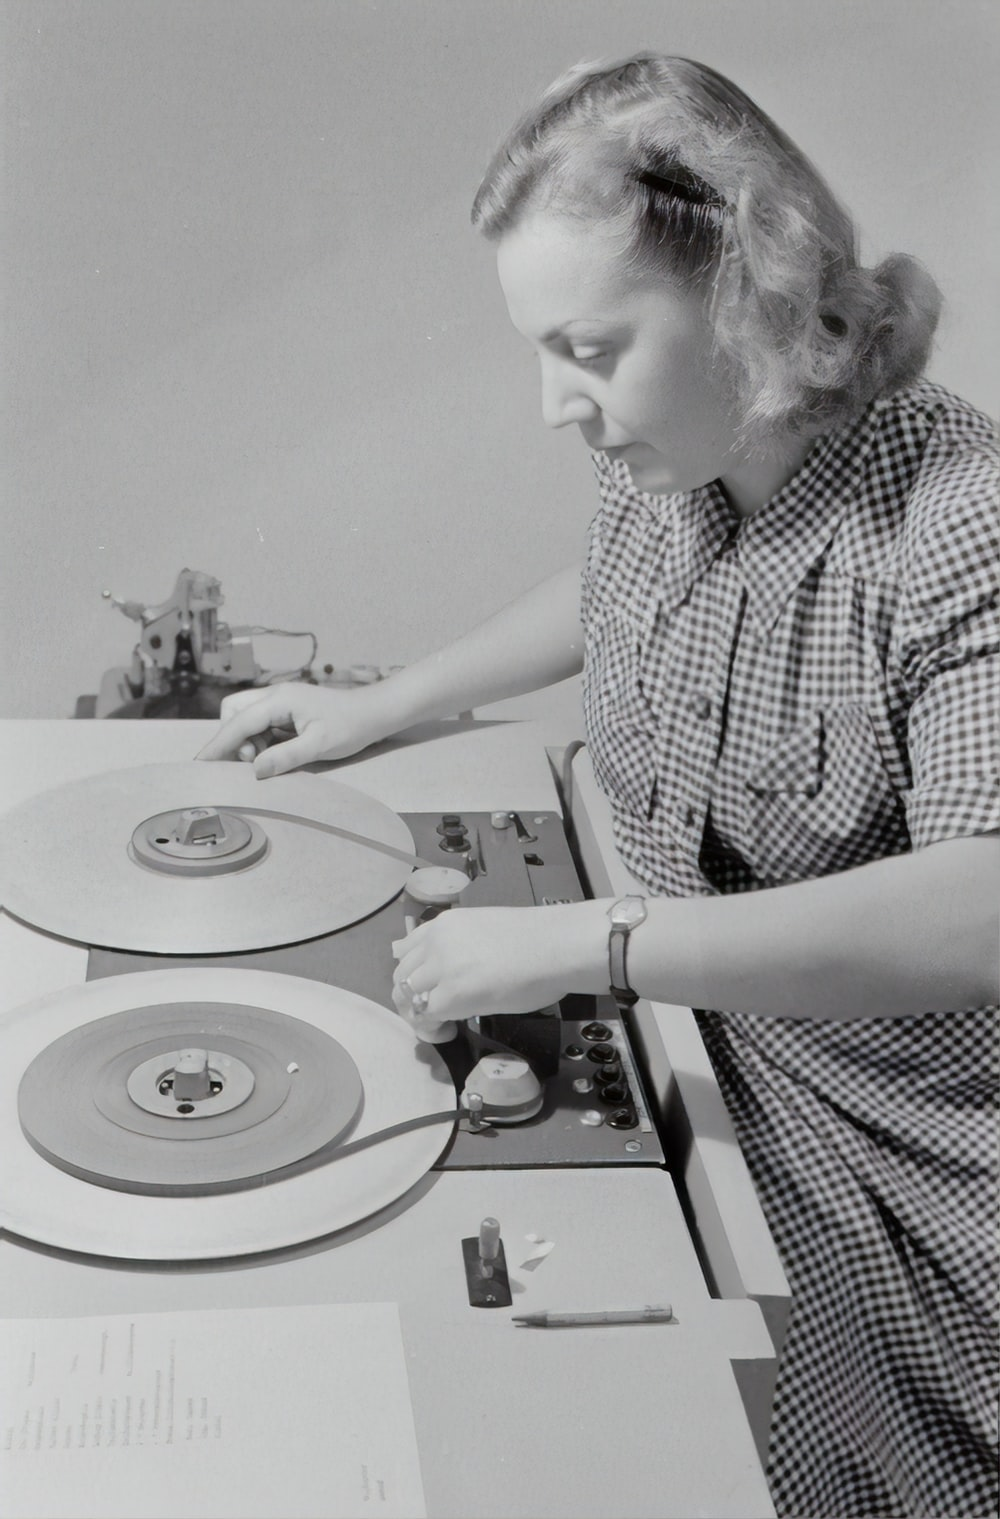 man in black and white checkered button up shirt playing dj turntable